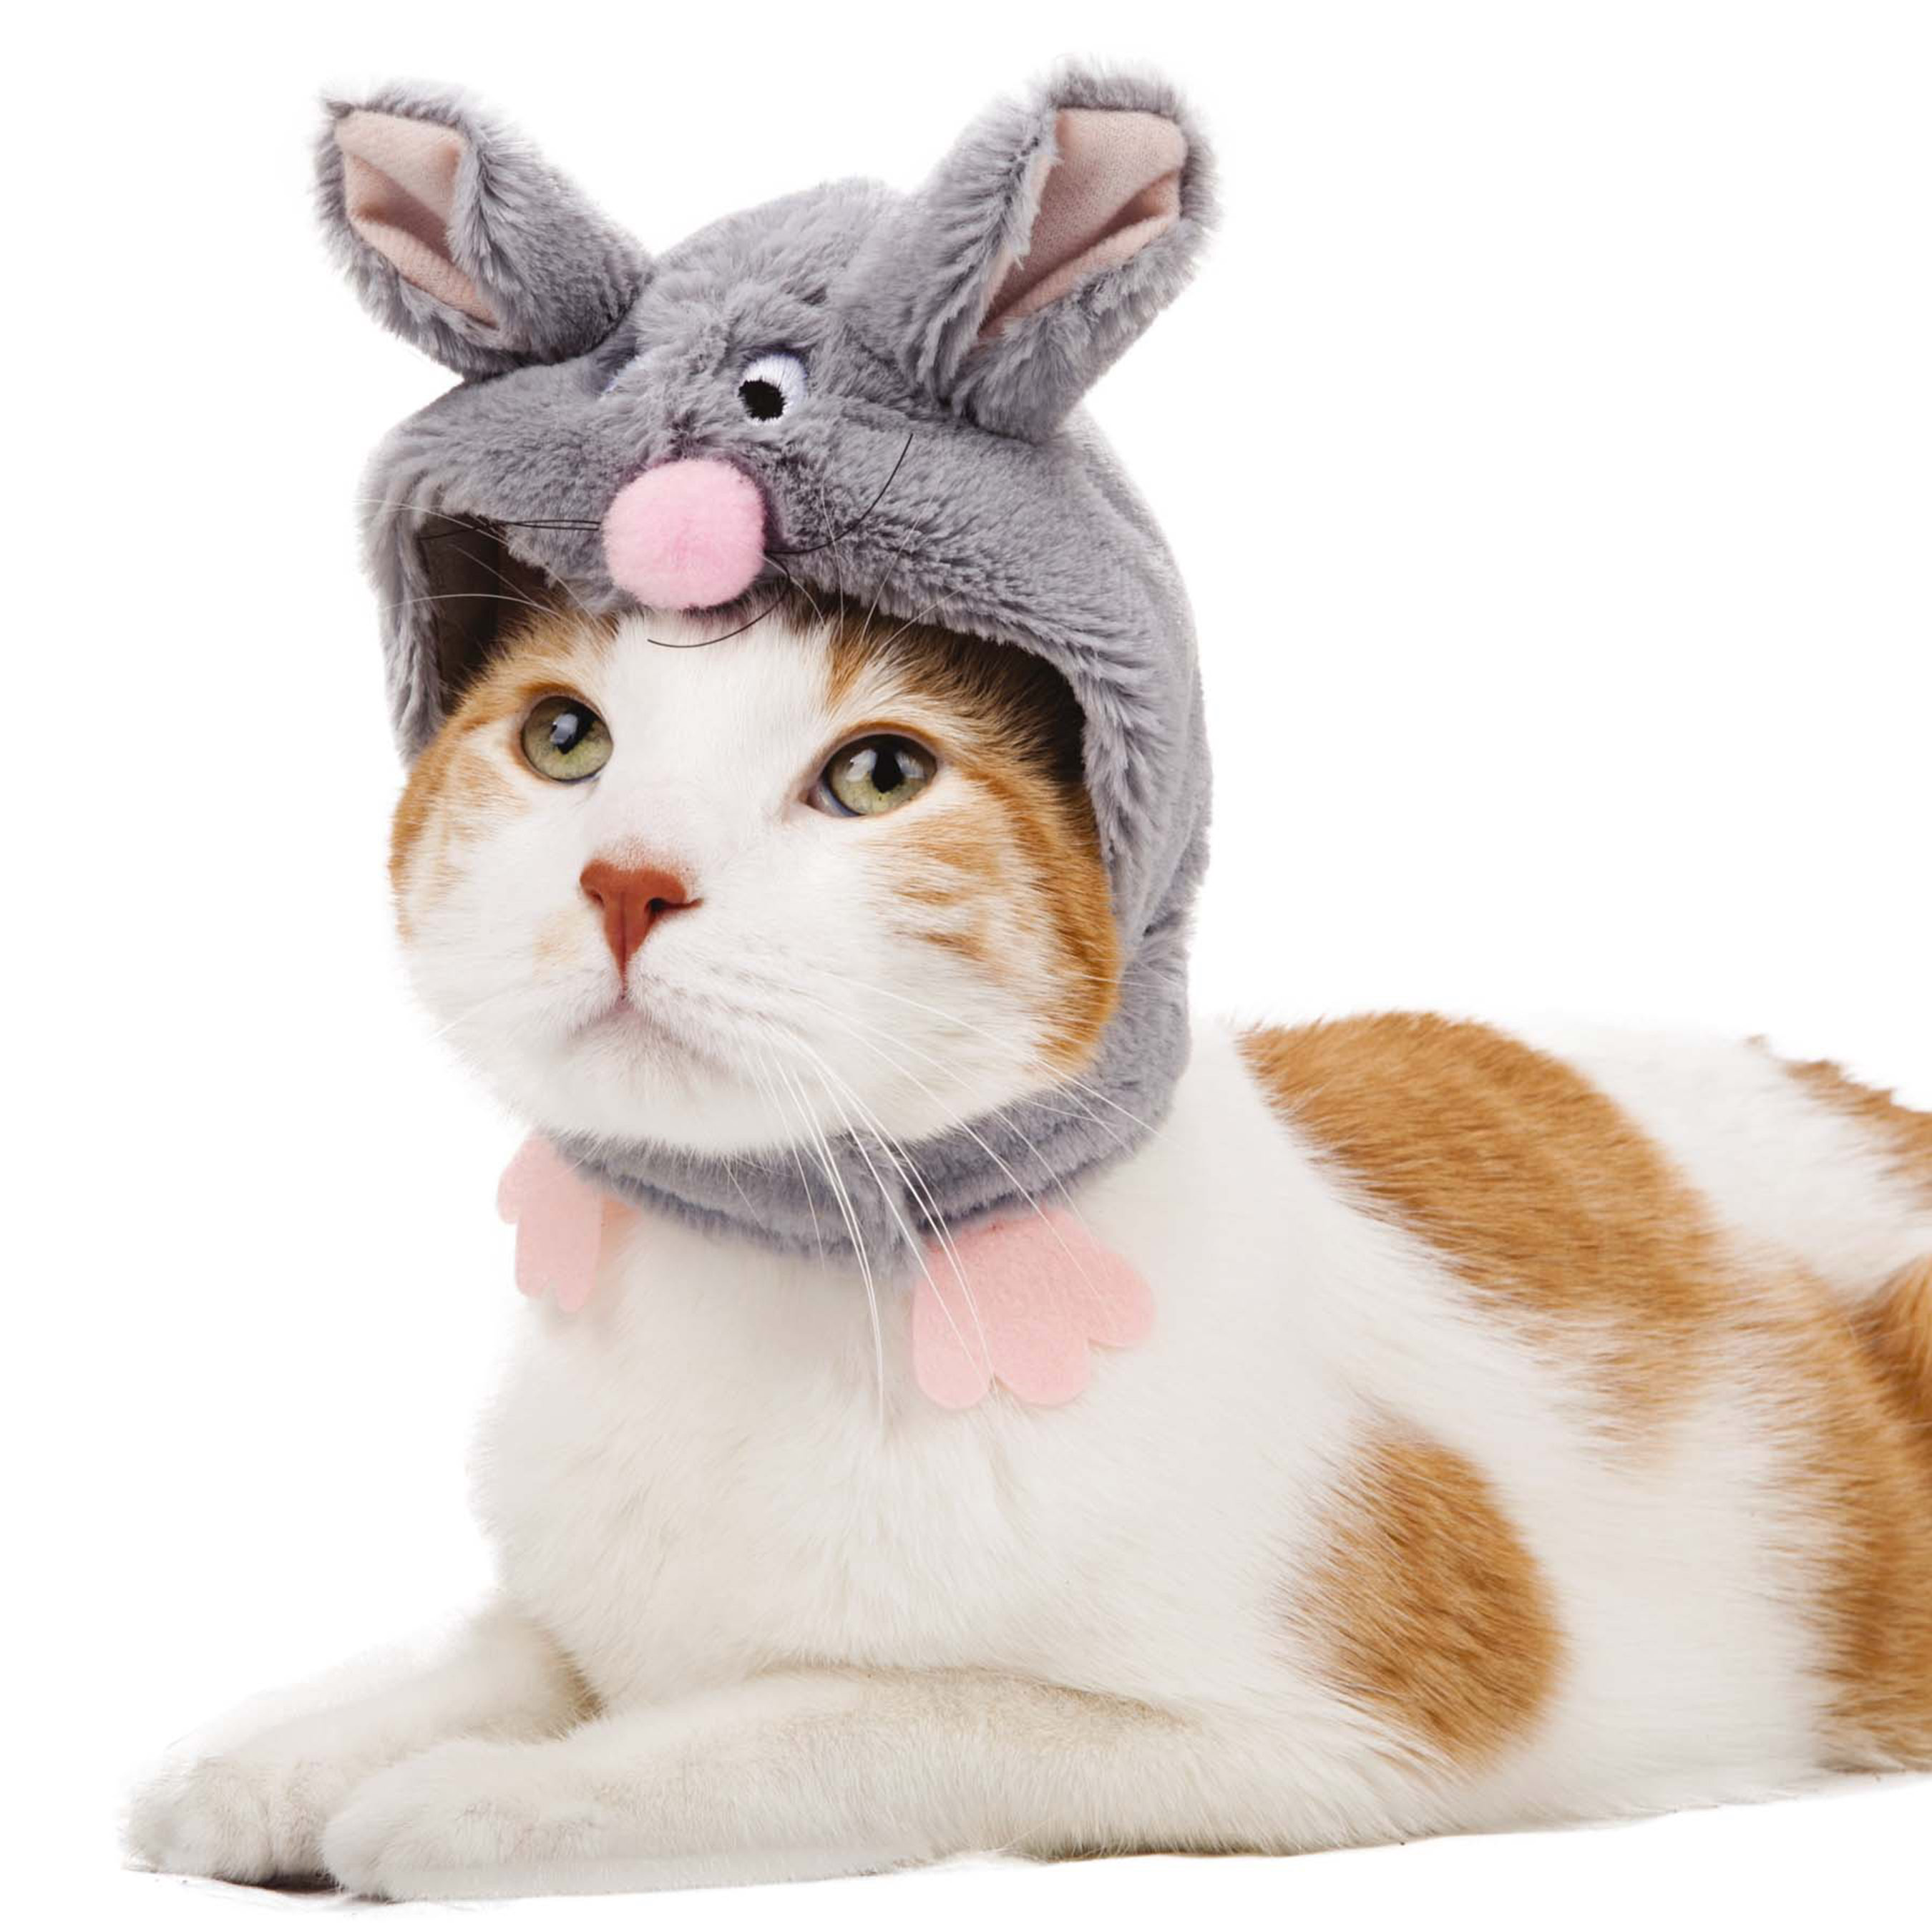 Cat Costumes. Today, the Halloween season celebrates this historical tabby by providing cat costumes of every imaginable feline, past and present. Whether you fashion dressing up as a Kitty Cat, Jungle Cat or Wild Cat, we have cat costumes for all you feline enthusiasts!